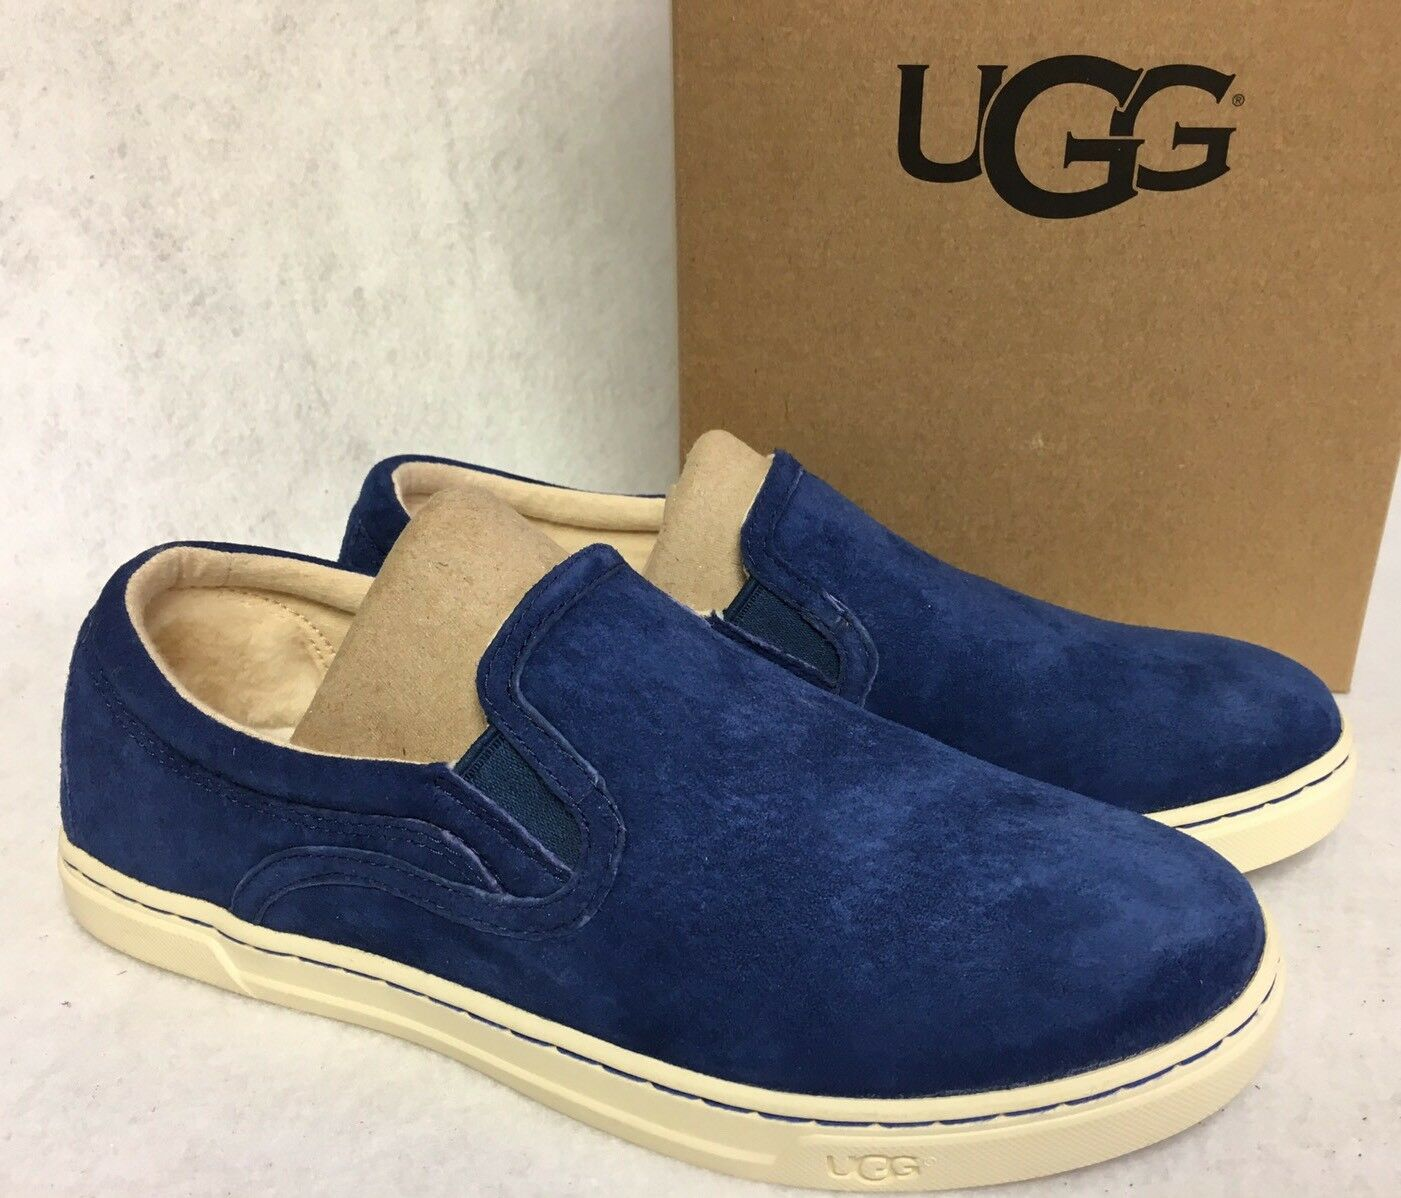 Ugg Australia - Wilde Wildleder-Slip-on-Sneakers aus Leder Marino Blue Loafers 1006737